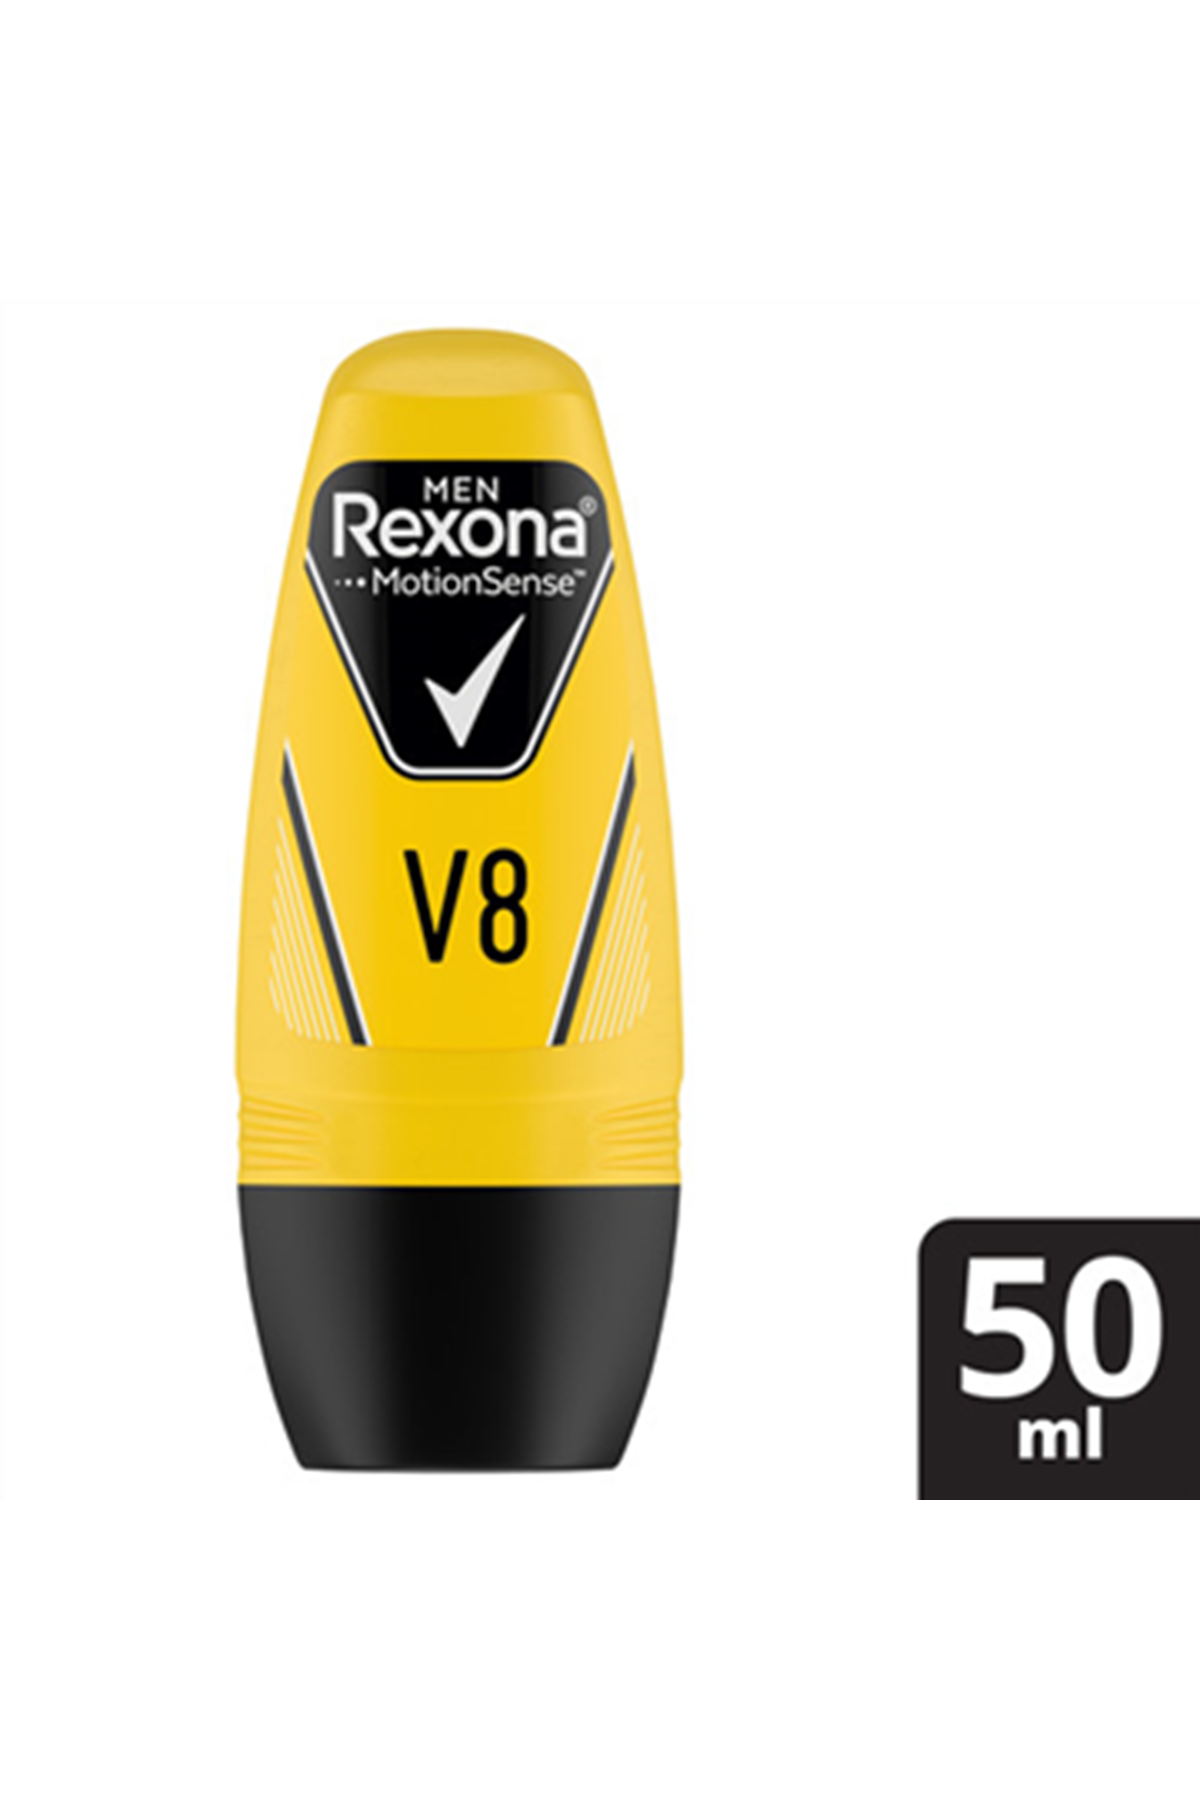 Rexona Roll-On Men Motıonsense V8 50 ml